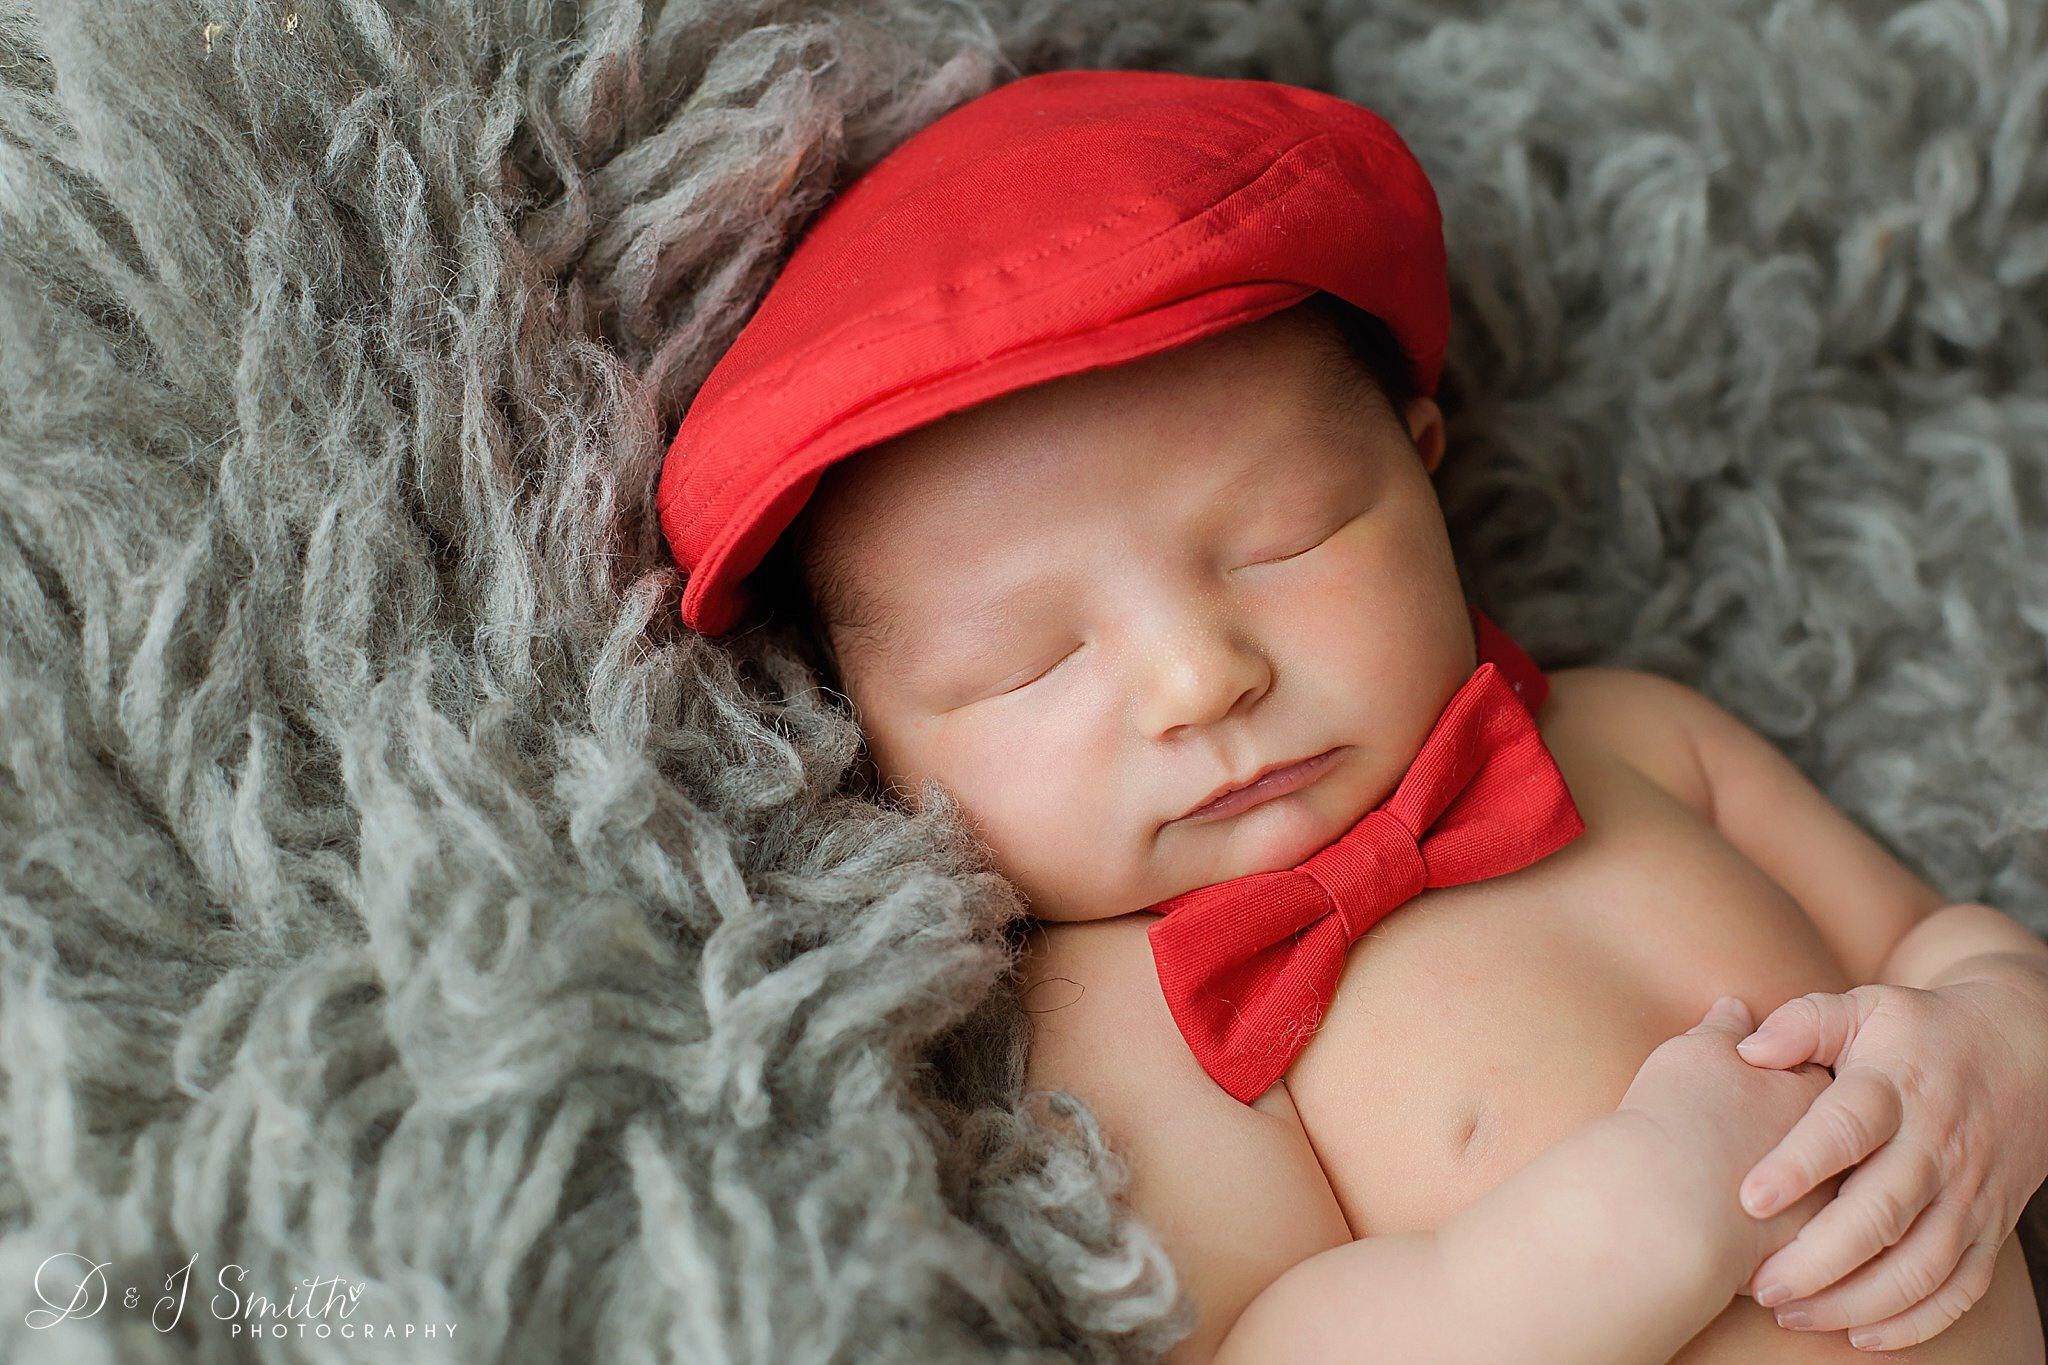 Baby red hat and bow tie set cdce338143a